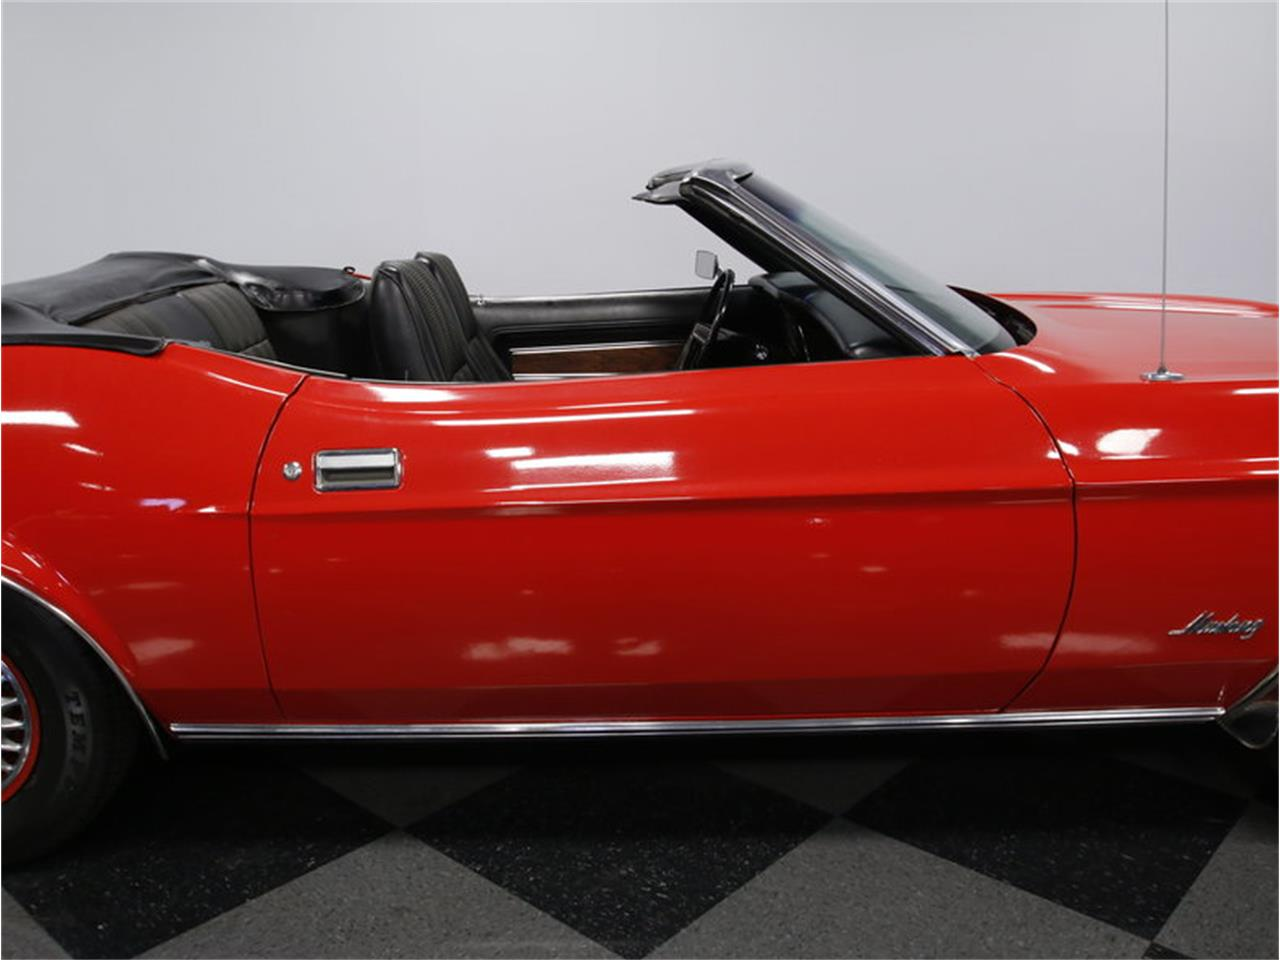 Large Picture of 1973 Mustang 351 Cobra Jet - $24,995.00 - KISW